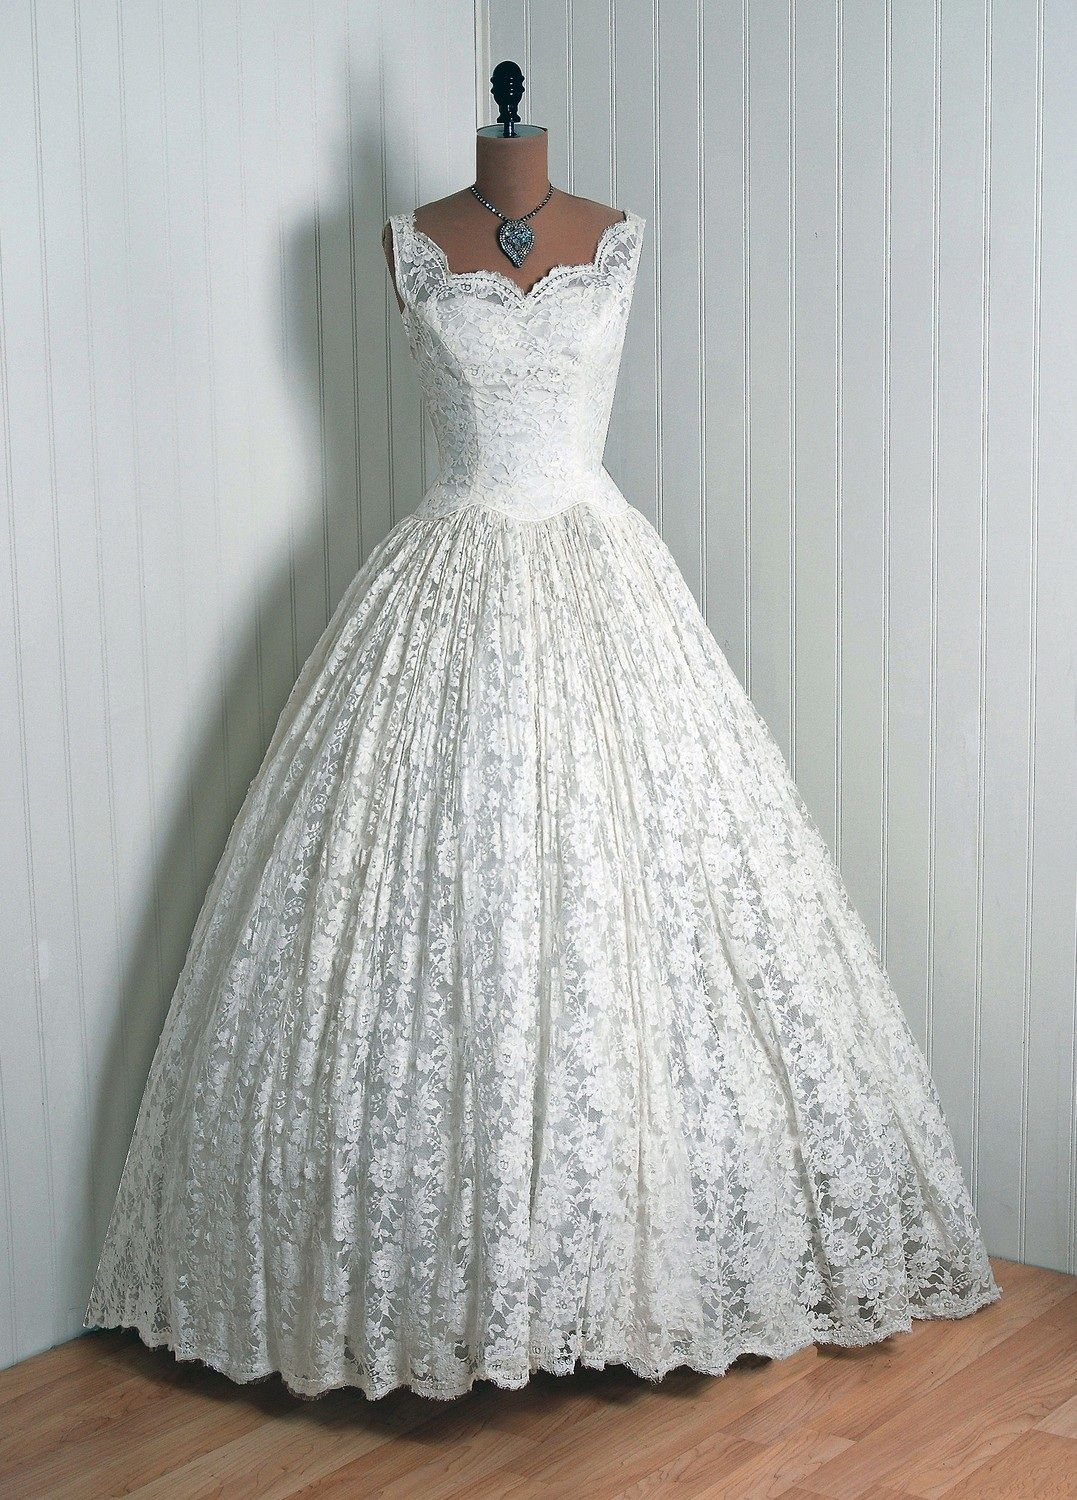 Gorgeous 1950s Wedding Dress | Vintage Vault | Pinterest